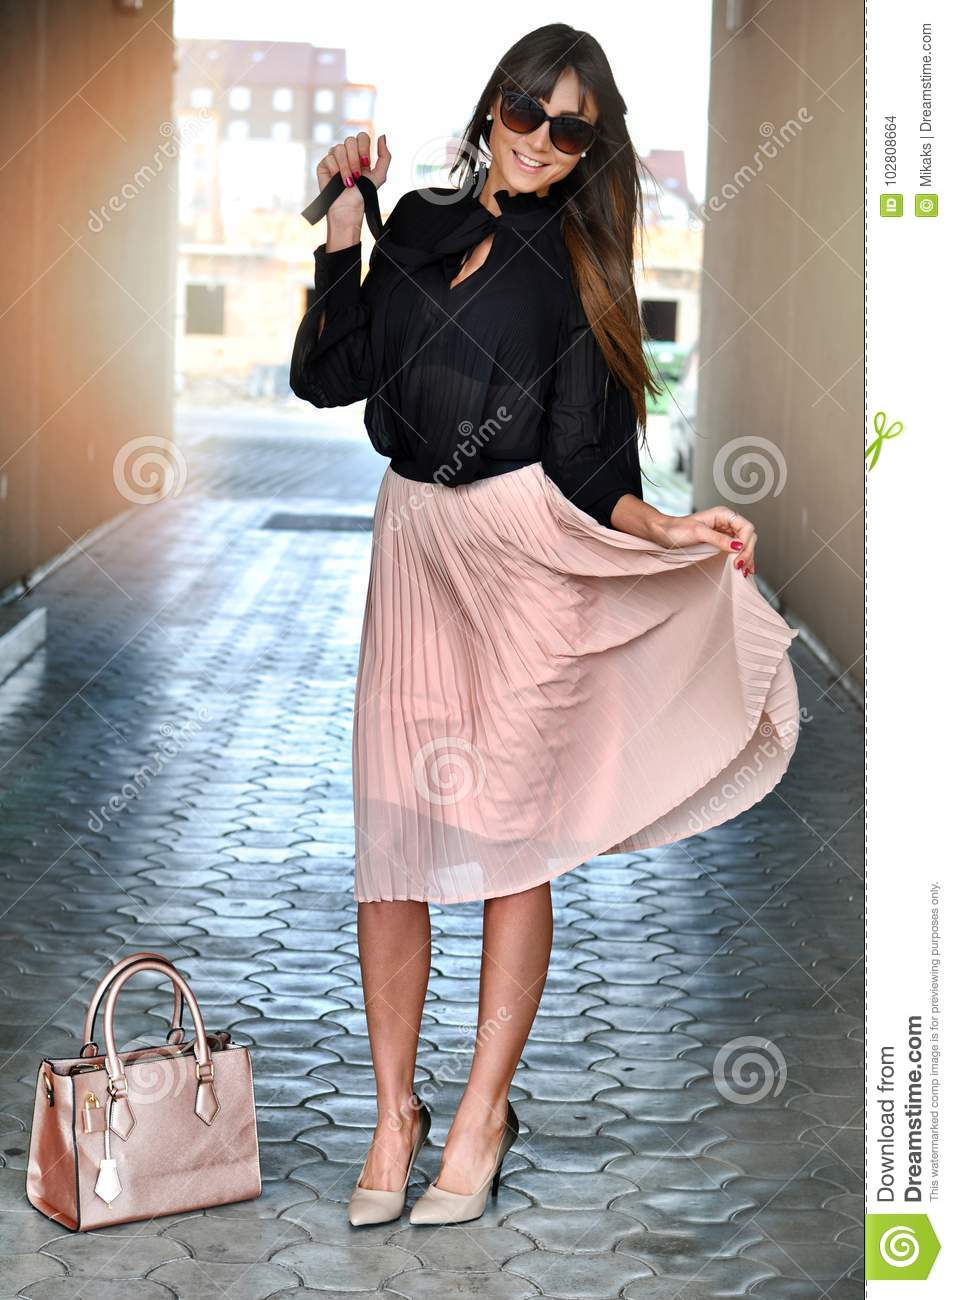 8a012990e Happy elegant brunette woman with sunglasses wearing a pink pleated skirt ,black  blouse, high pink-black heels, leather bag. Elegant outfit for every ...